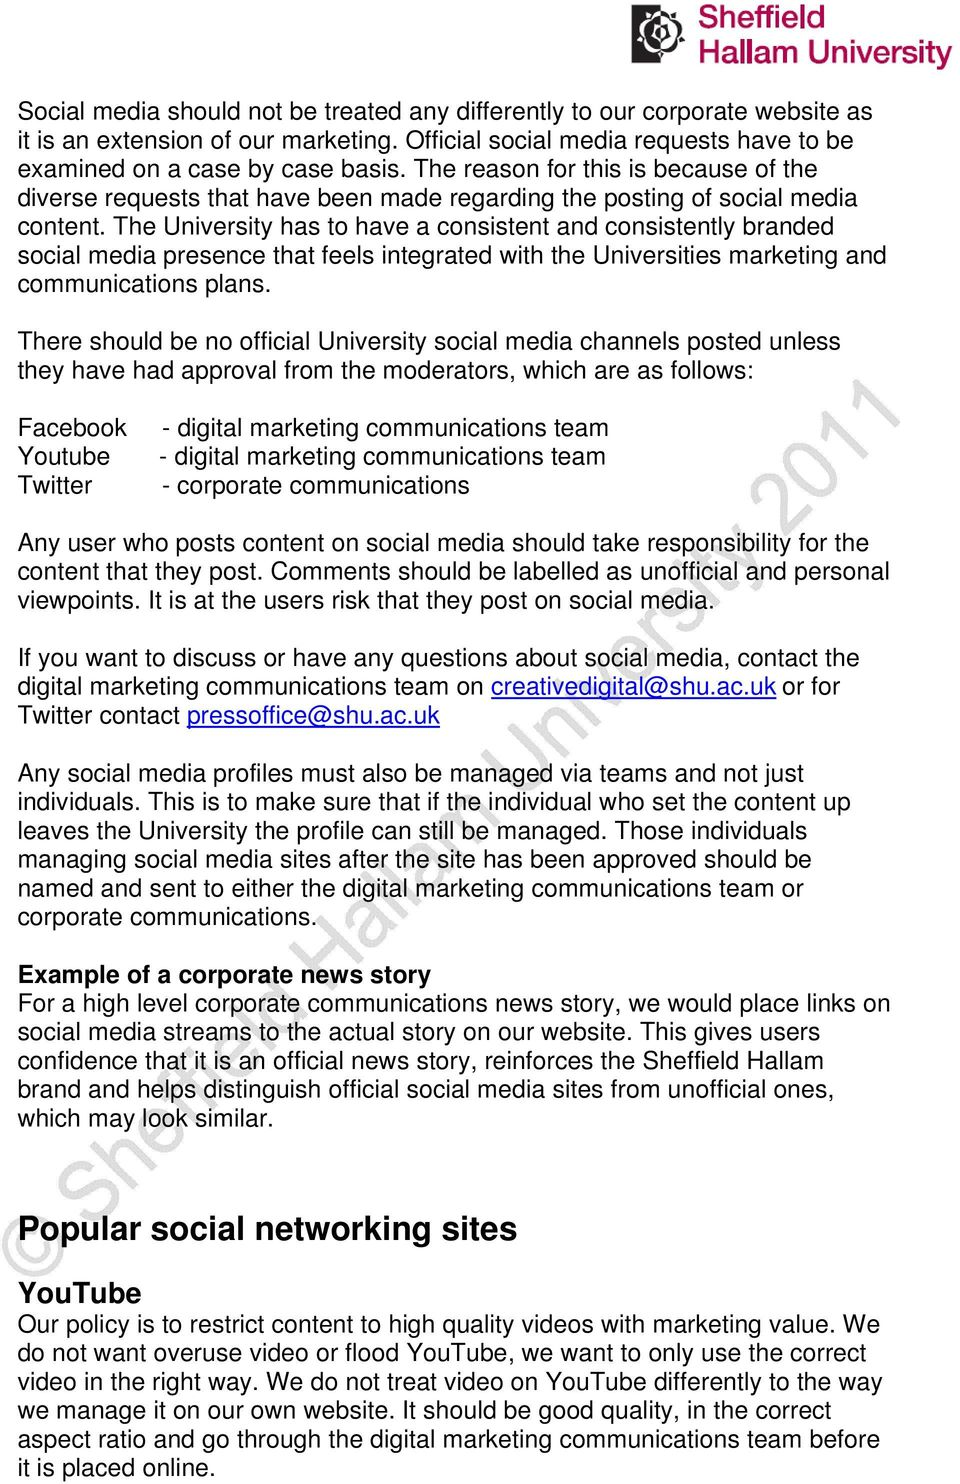 The University has to have a consistent and consistently branded social media presence that feels integrated with the Universities marketing and communications plans.